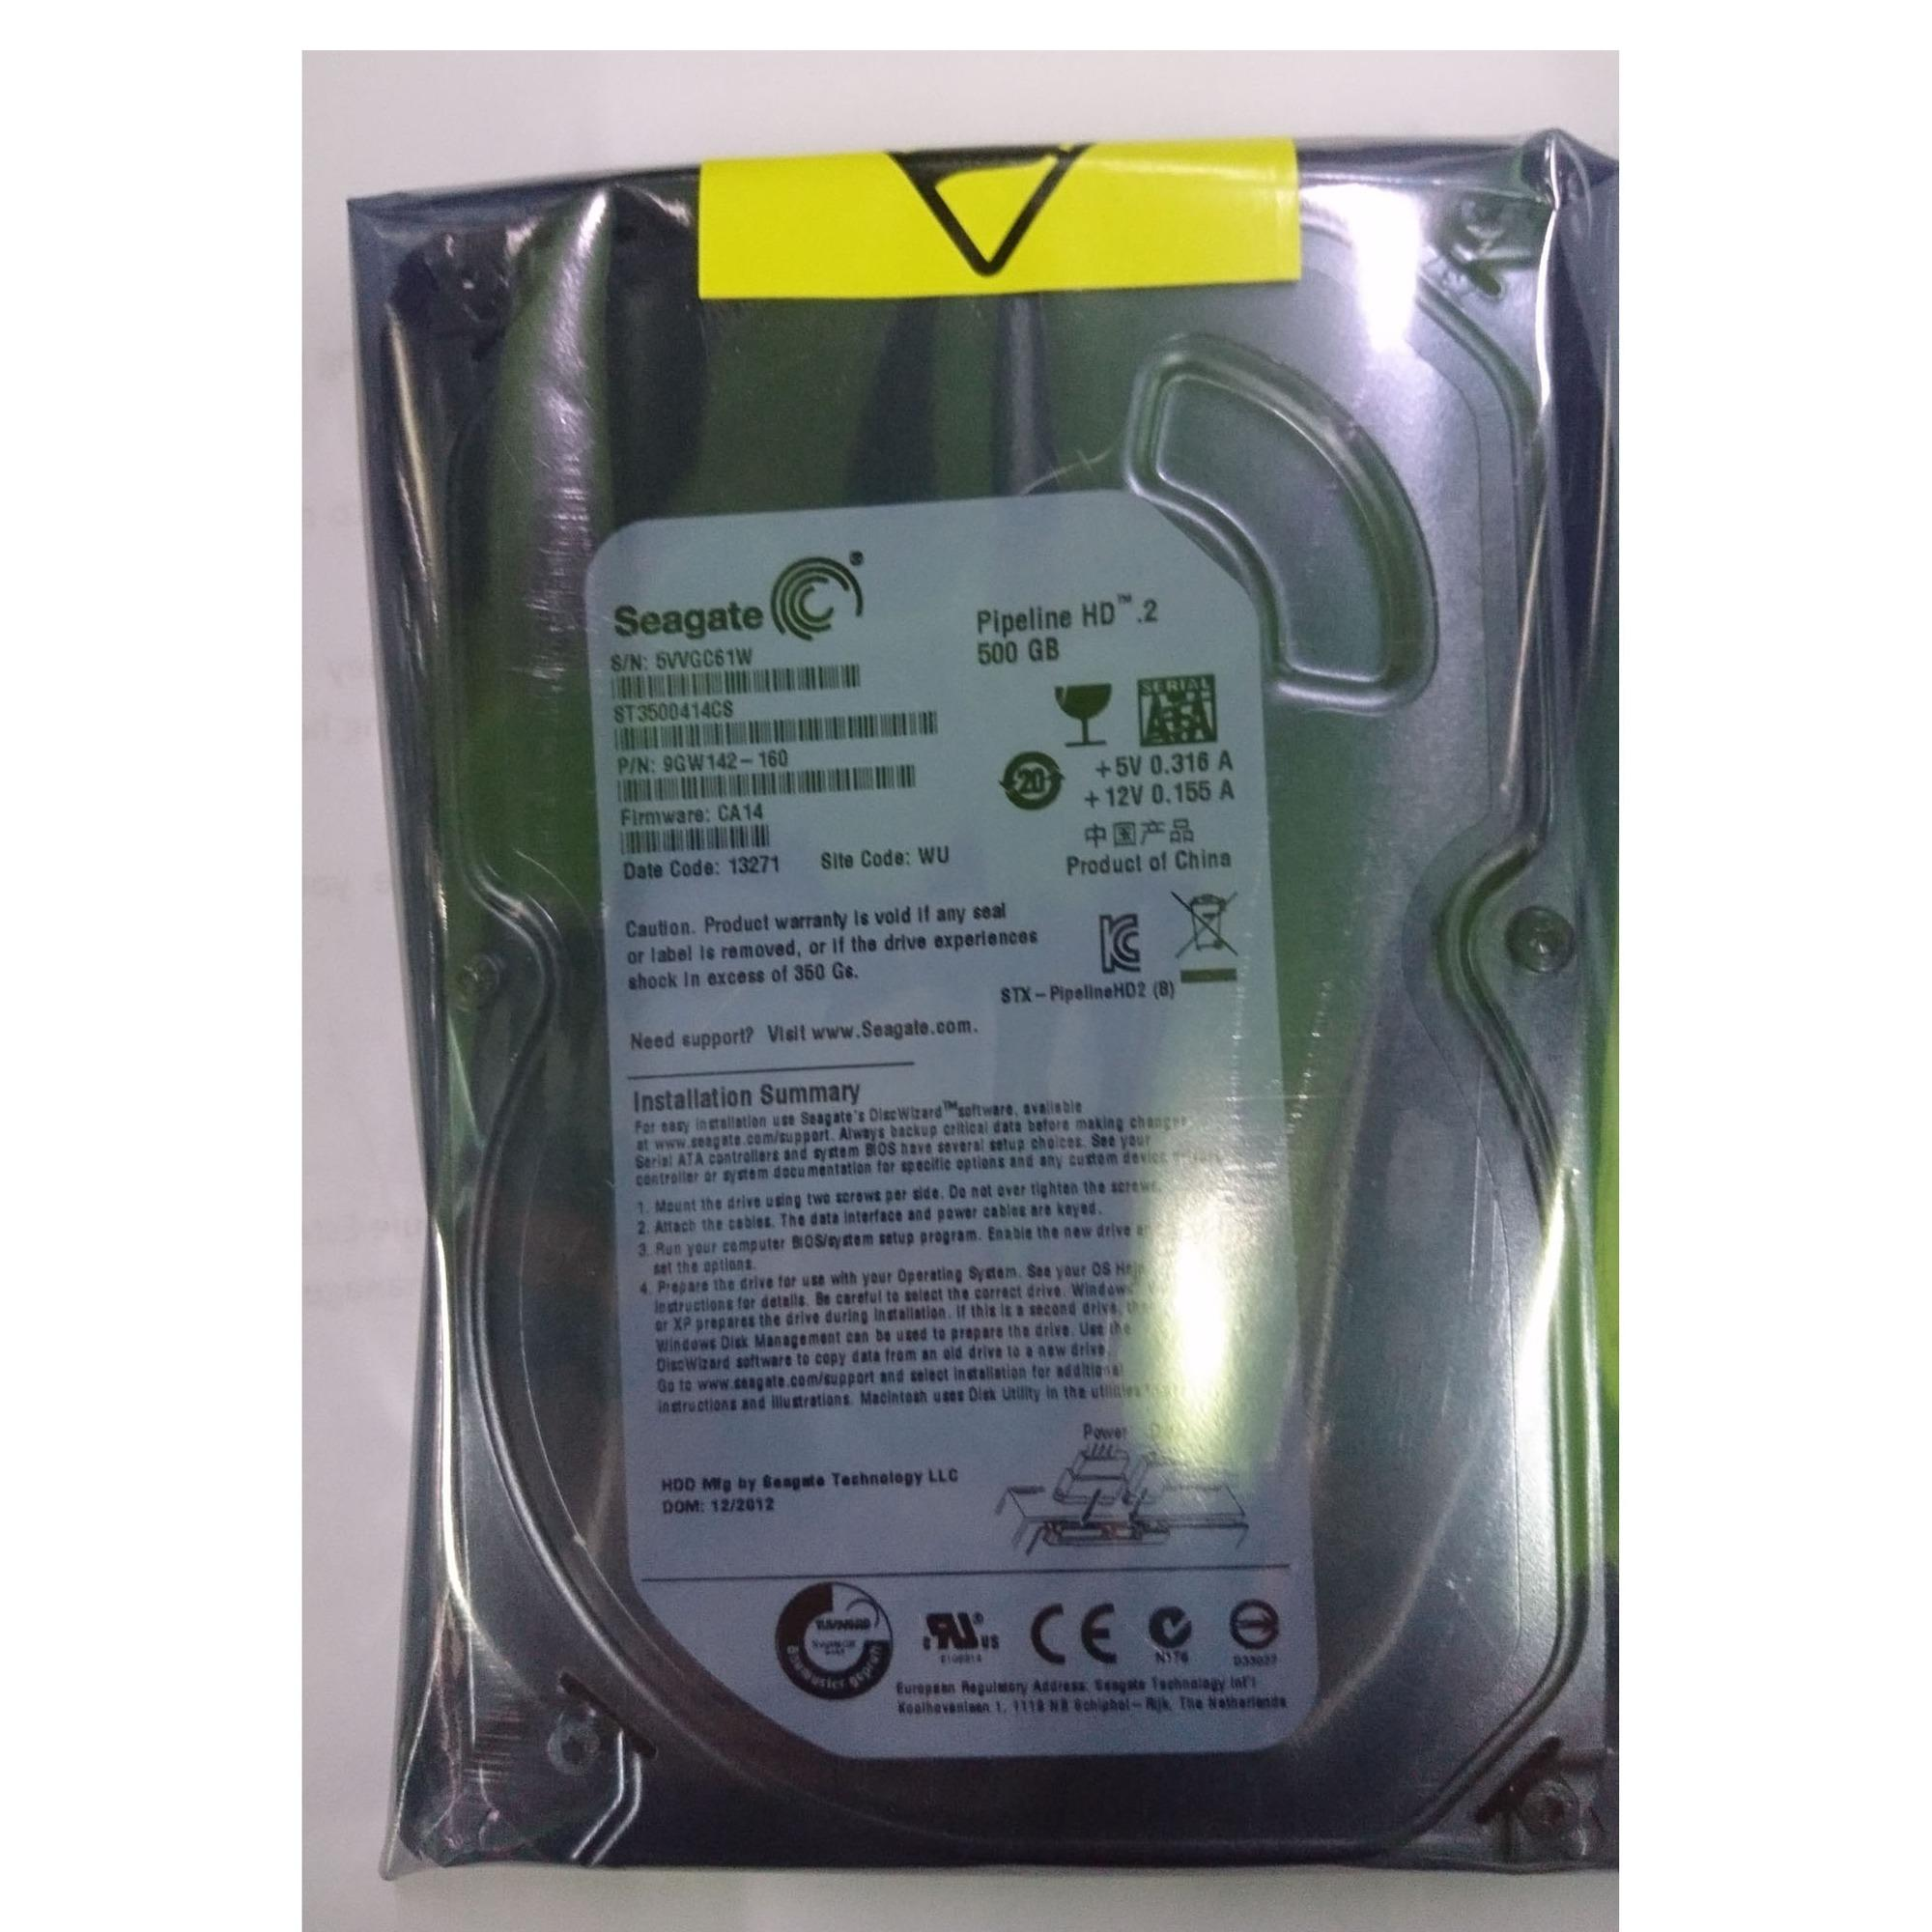 Hdd For Sale Hard Disk Drives Prices Brands Specs In Notebook Ide Interface Cdrom To Usb External Drive Circuit Boardred Seagate 500gb Sata Desktop 35 Inch